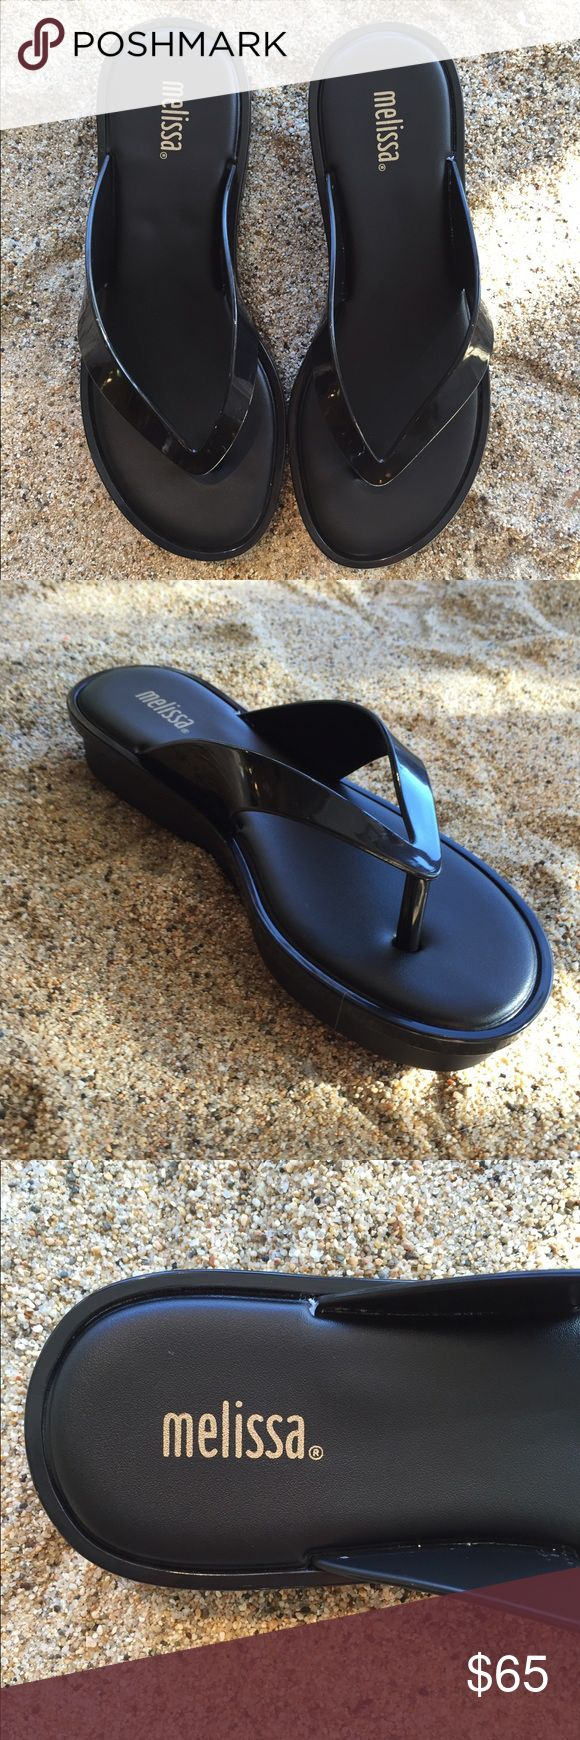 Melissa Flat Form Sandal Casual sandal styled with a padded footbed- inset platform and rubber sole Melissa Shoes Sandals